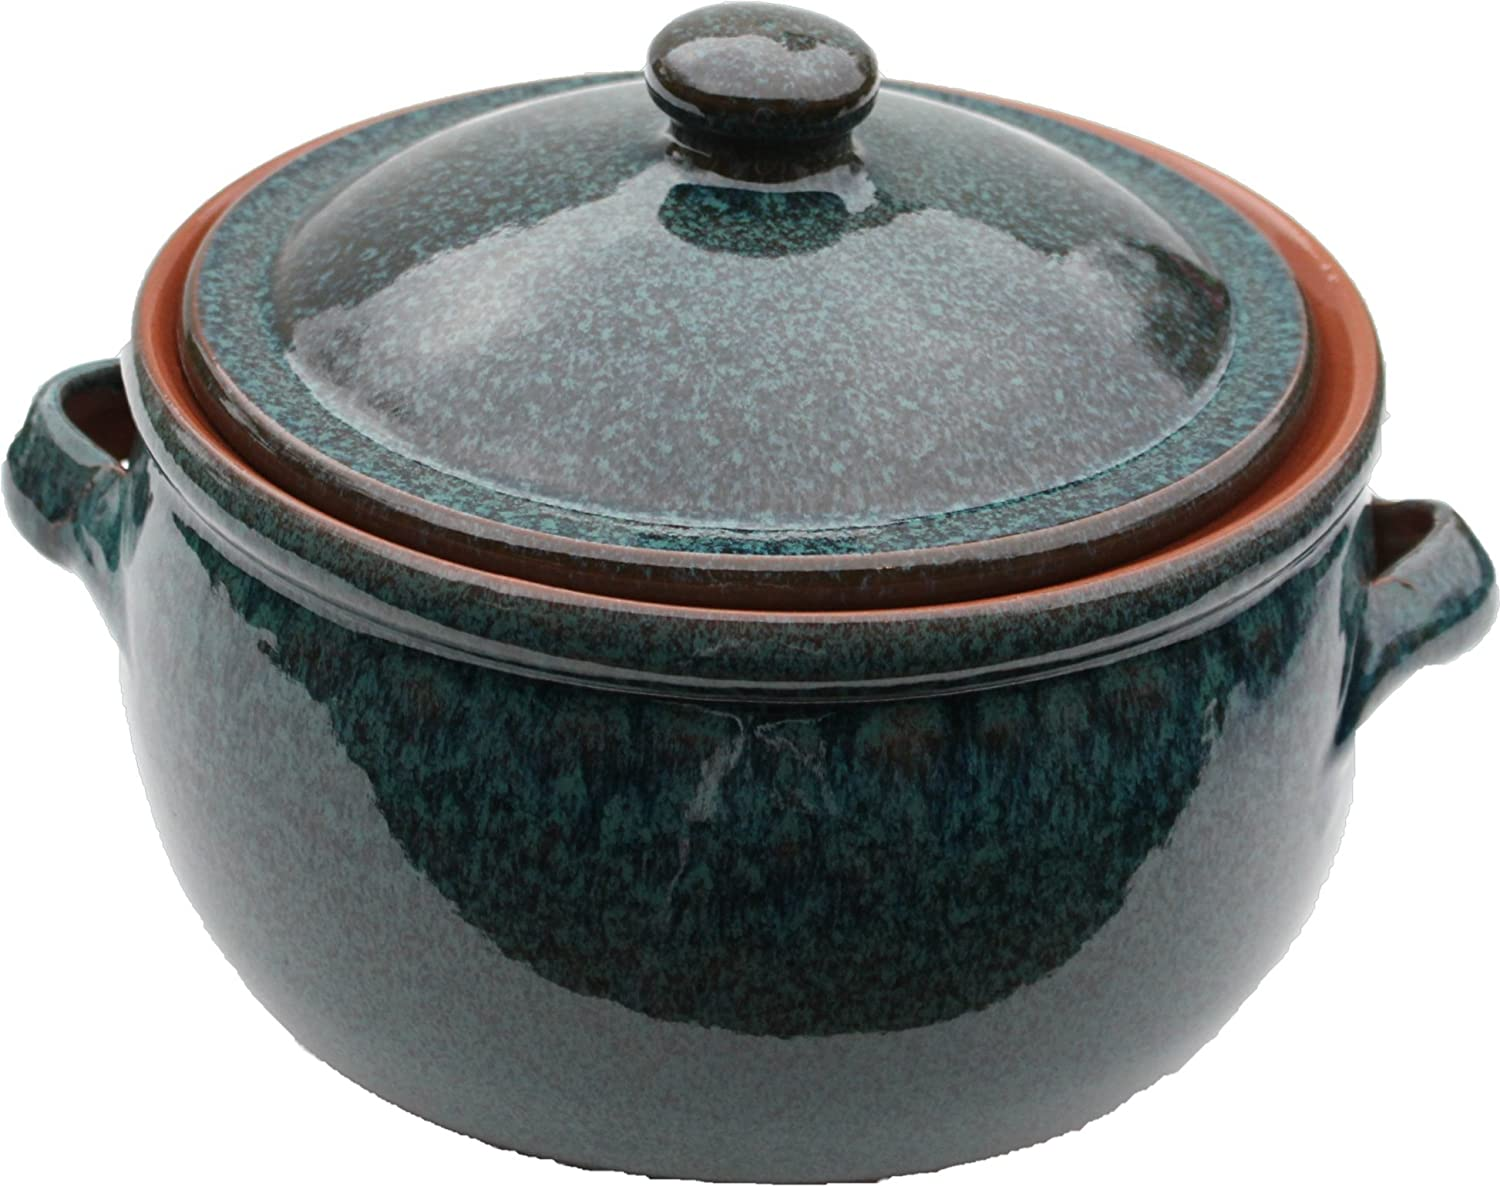 Mazali Pottery Emilio Reactive Spanish Cookware Stew Pot, Terracotta, Green PEA114 UNA_01367155_BlackWhite-40x50